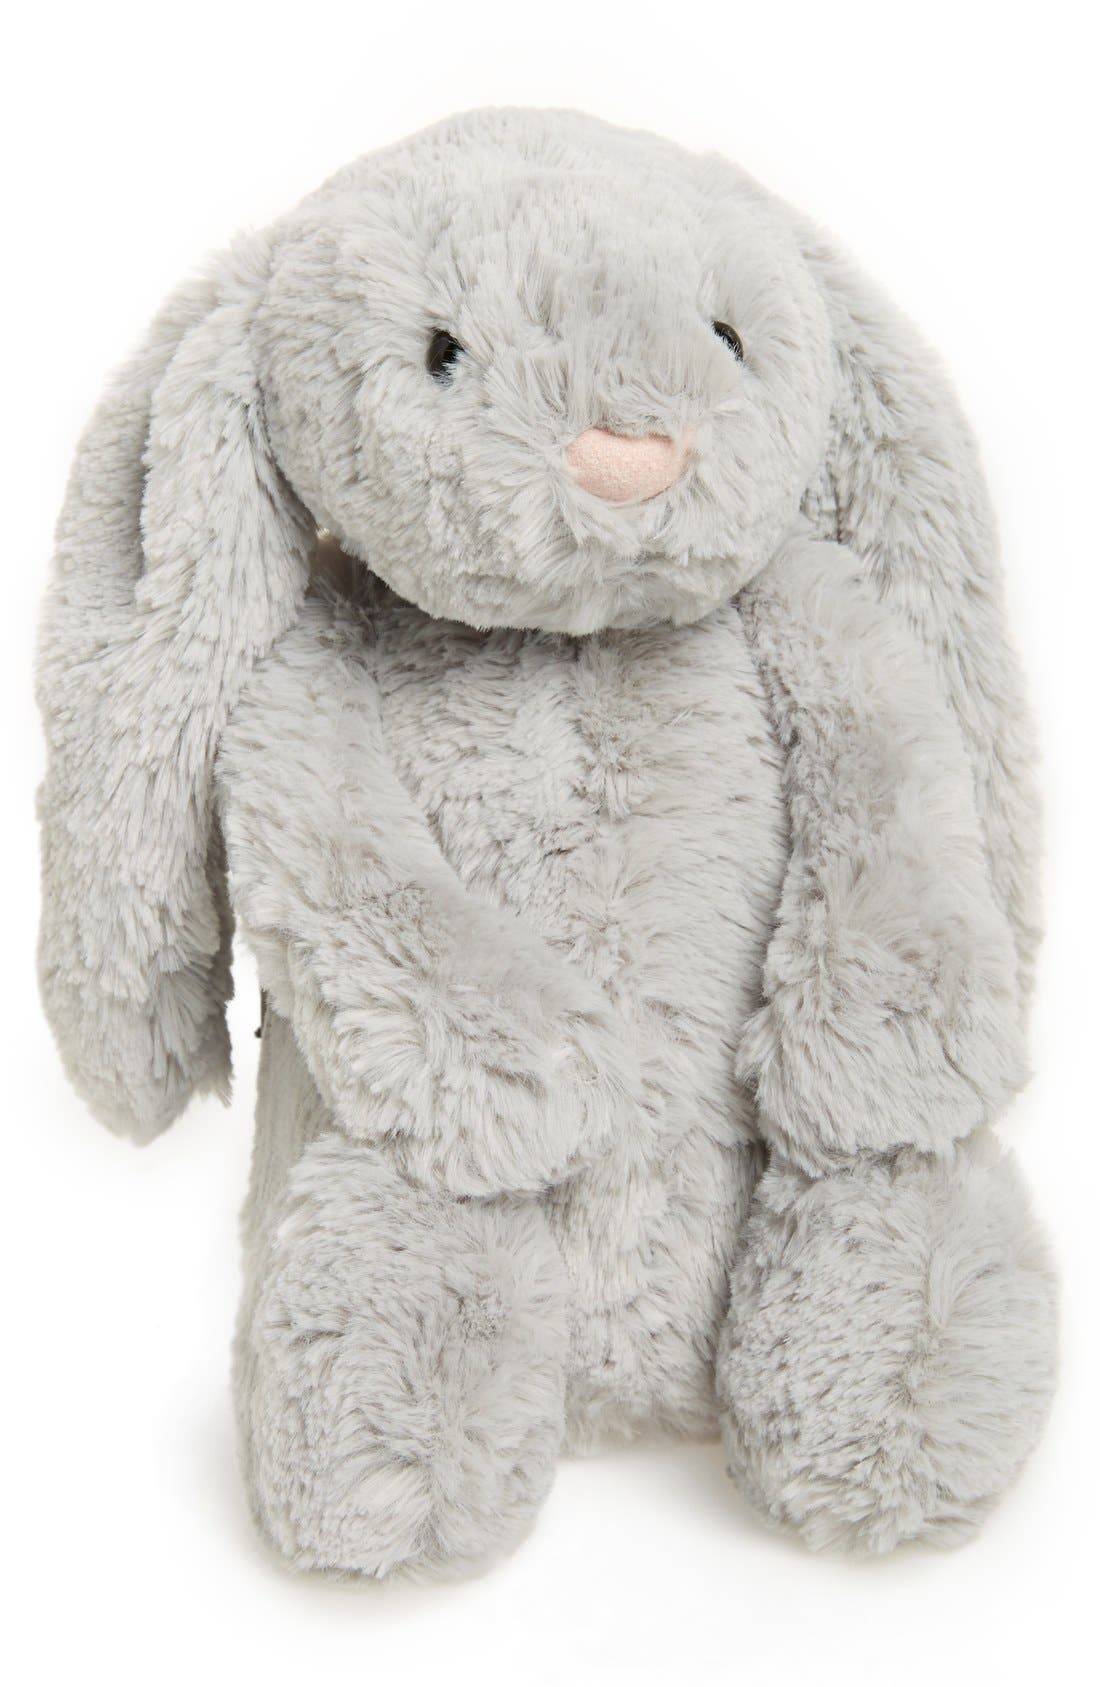 Jellycat 'Bashful Bunny' Stuffed Animal